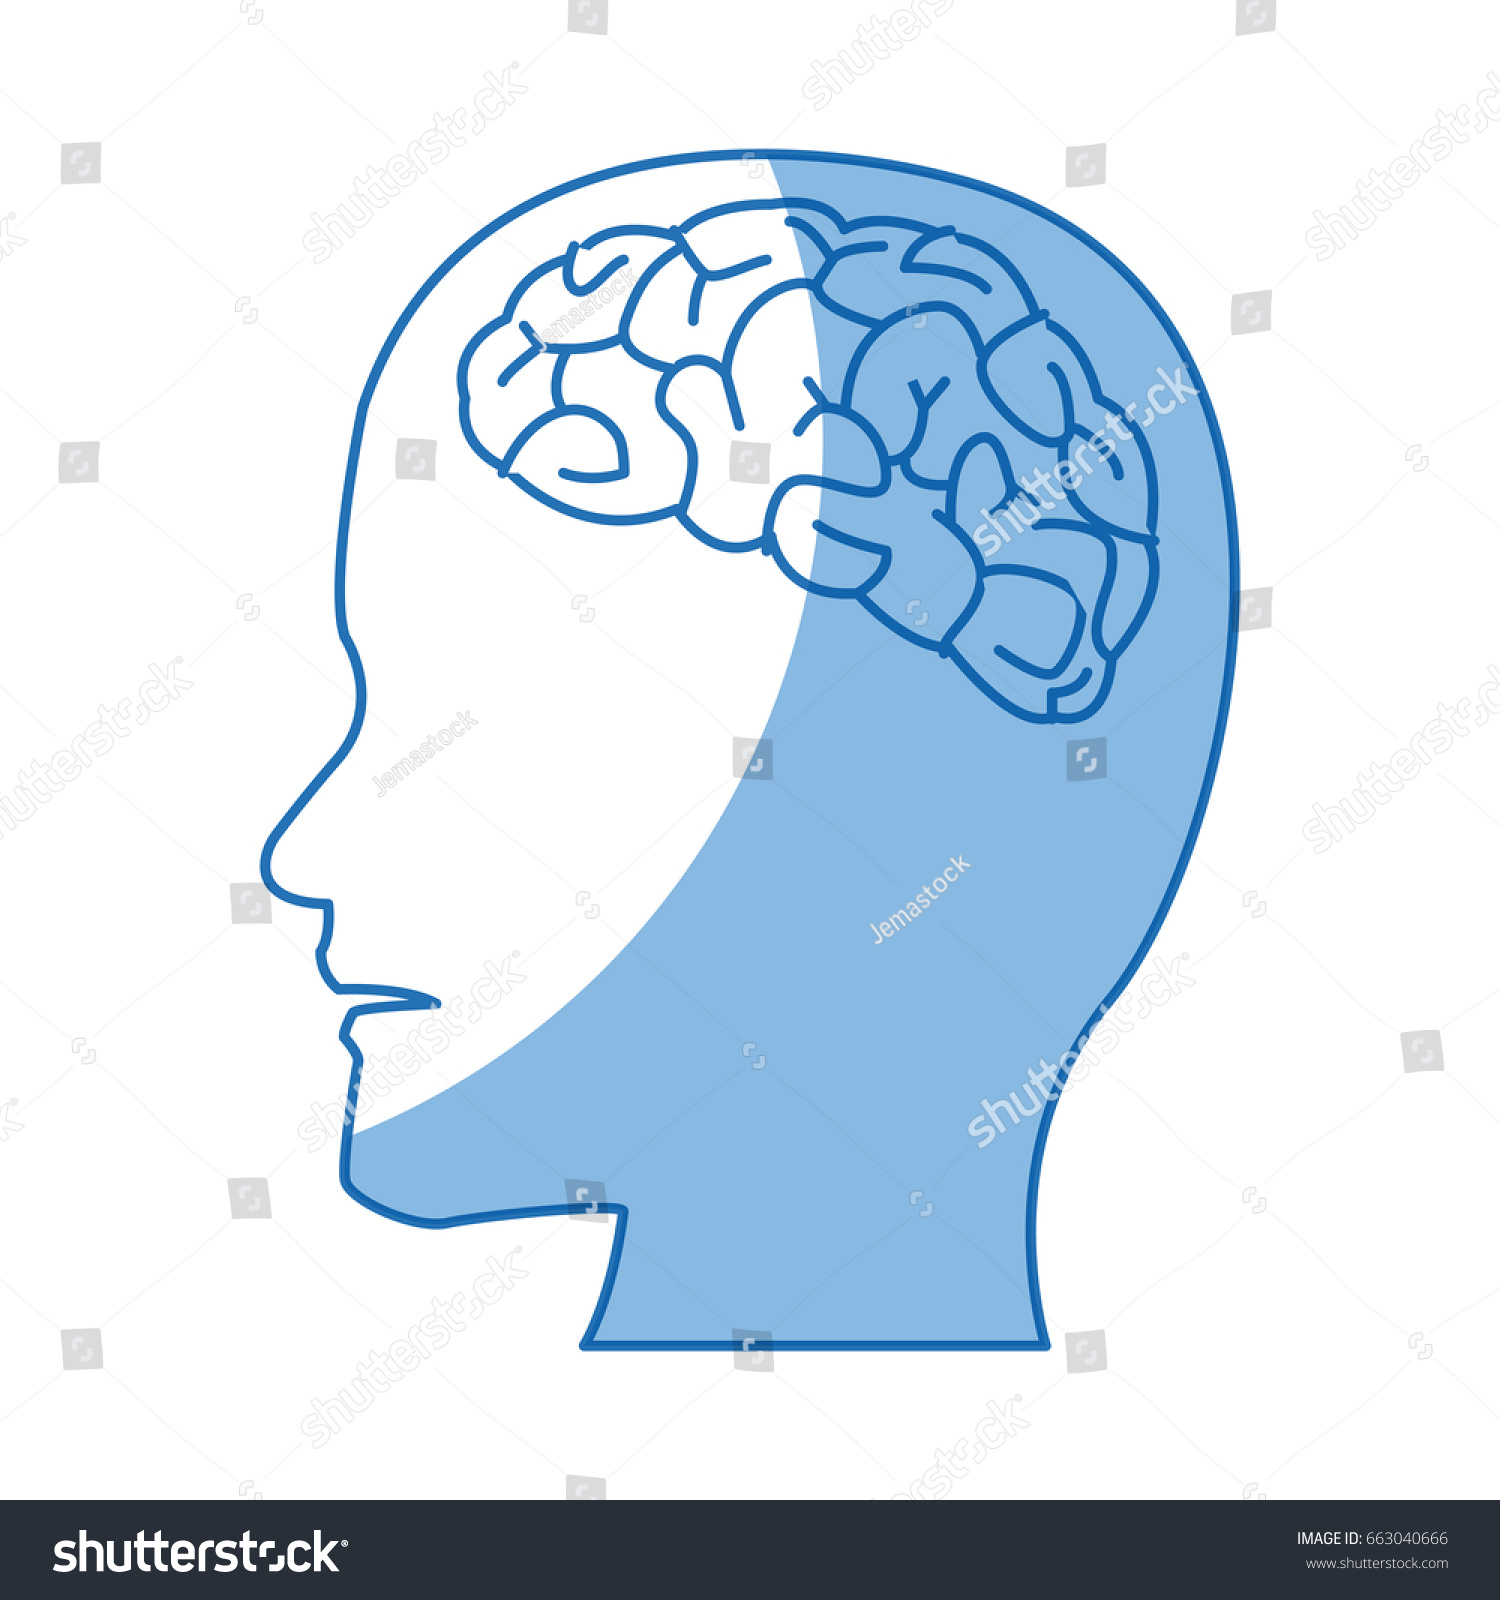 Profile Human Head Brain Anatomy Stock Vector 663040666 - Shutterstock